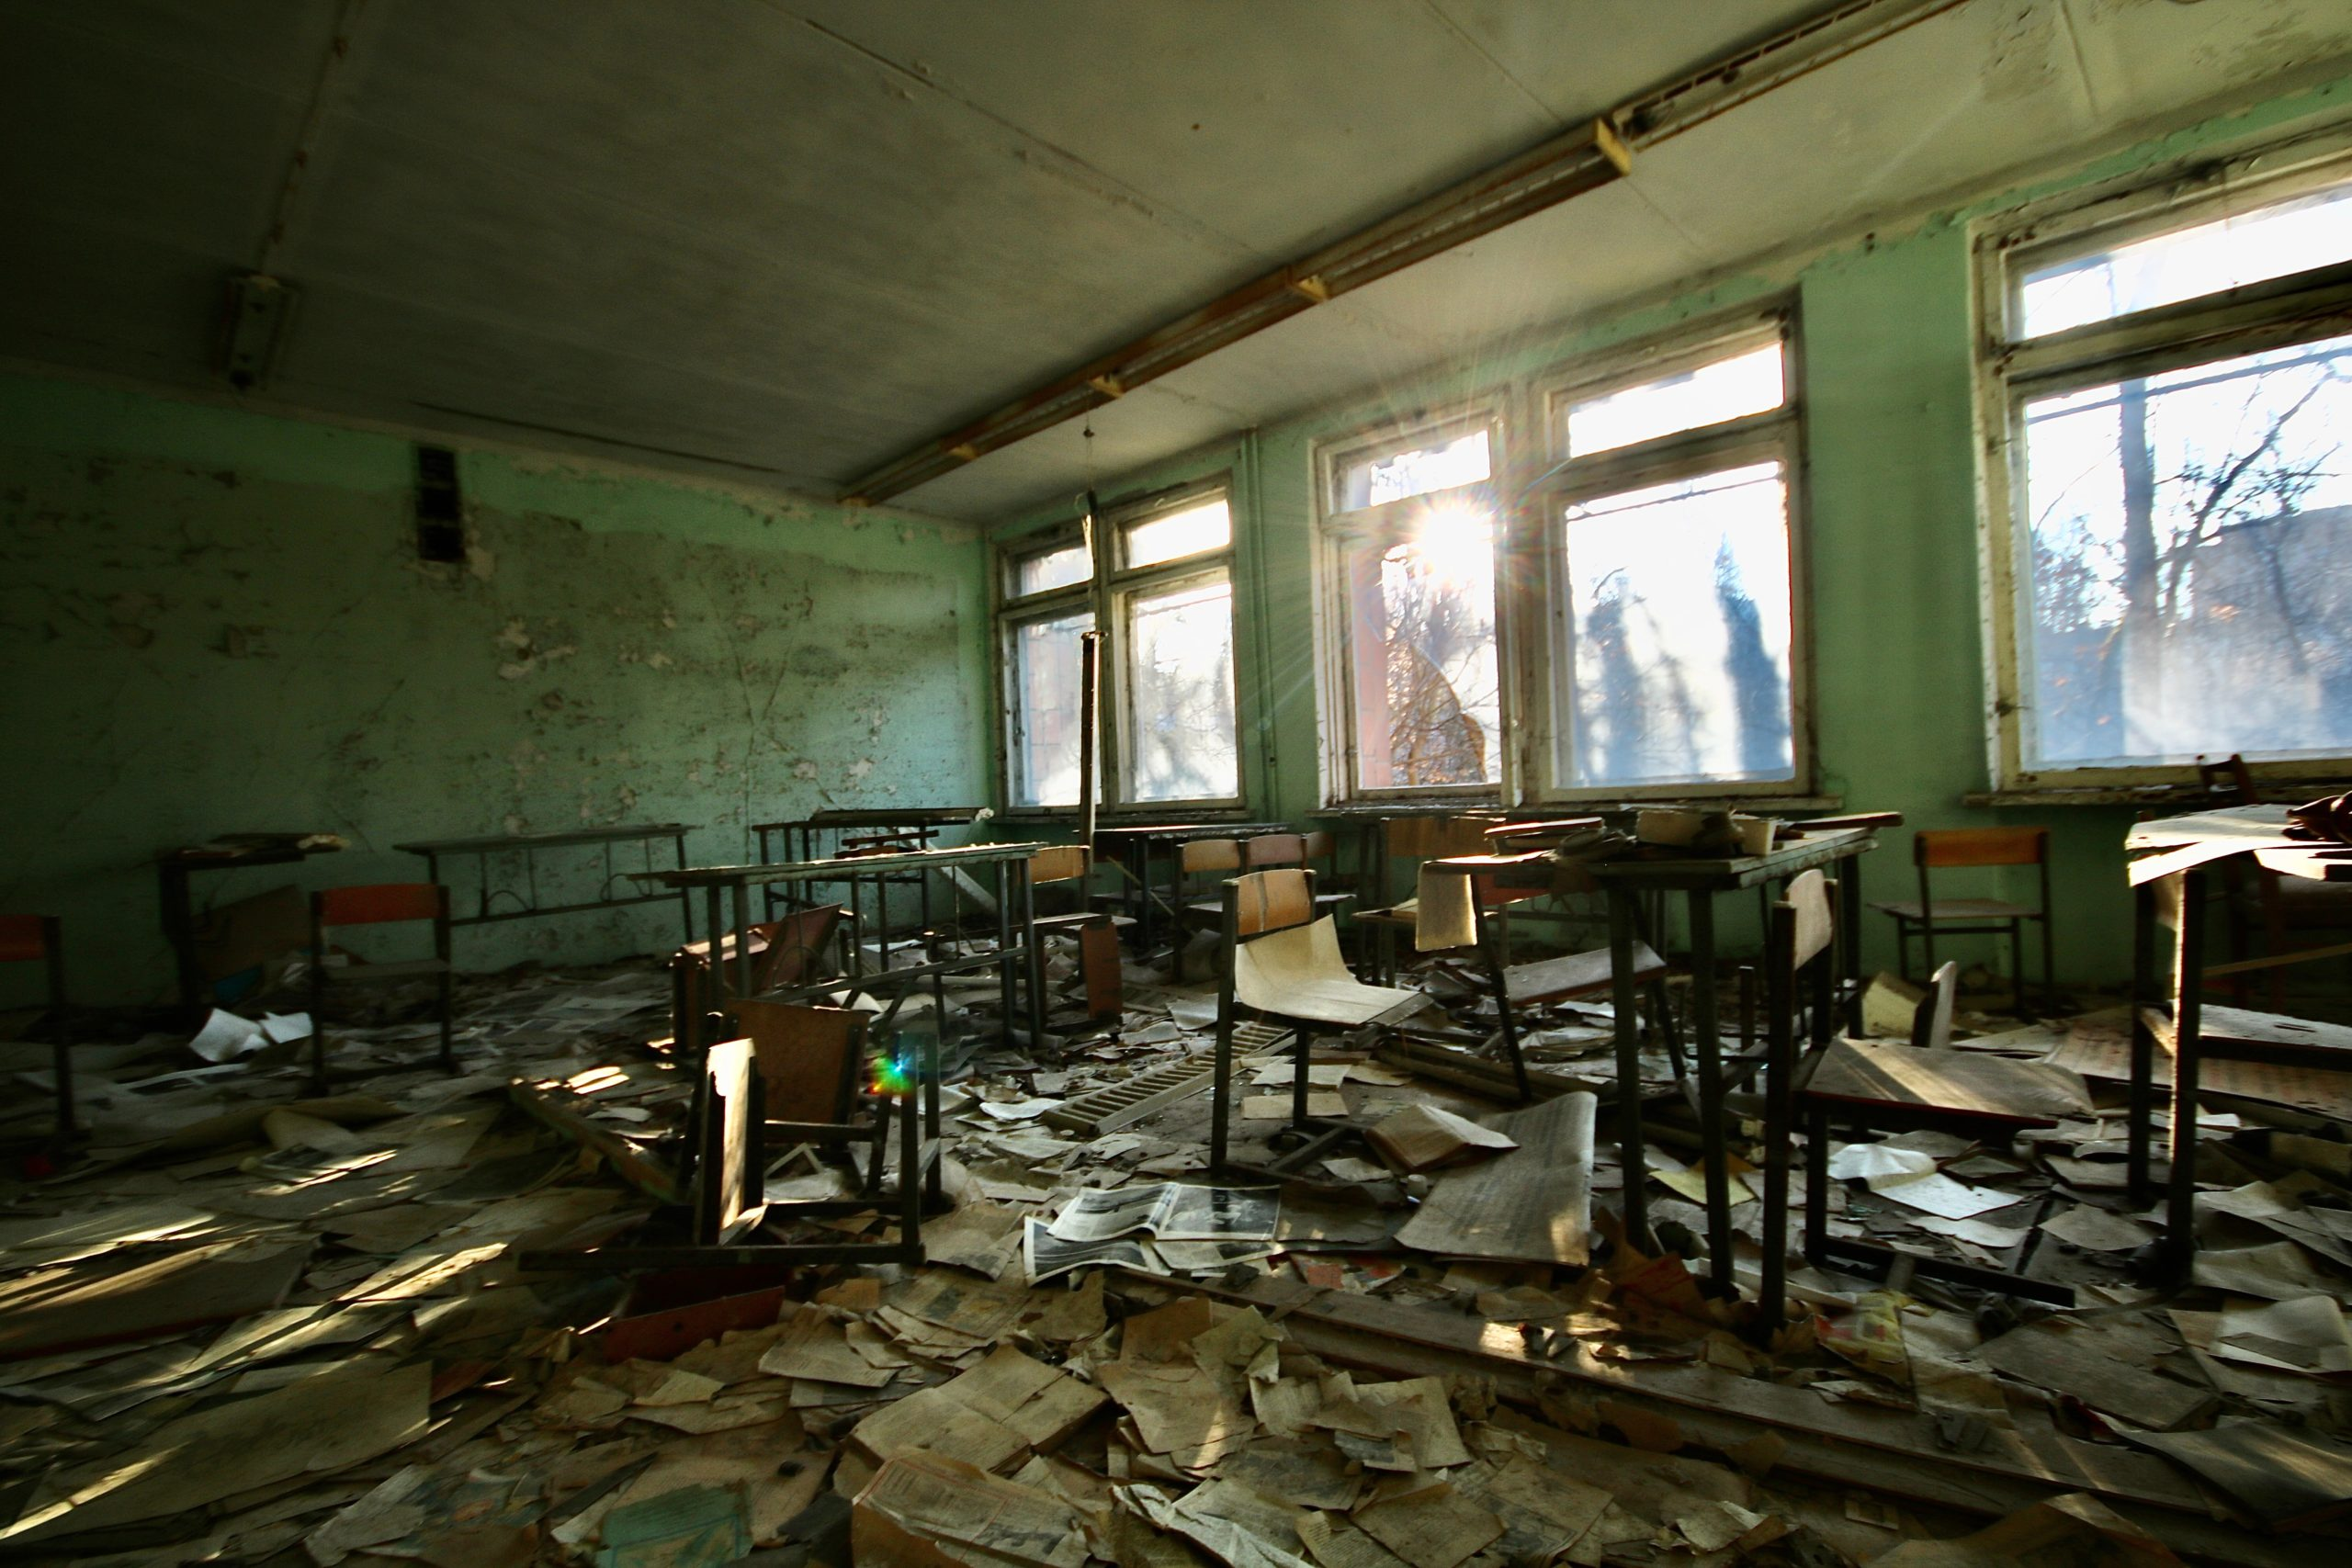 A deserted classroom in disarray with windows smashed, desks and chairs turned over the floor strewn with paapers